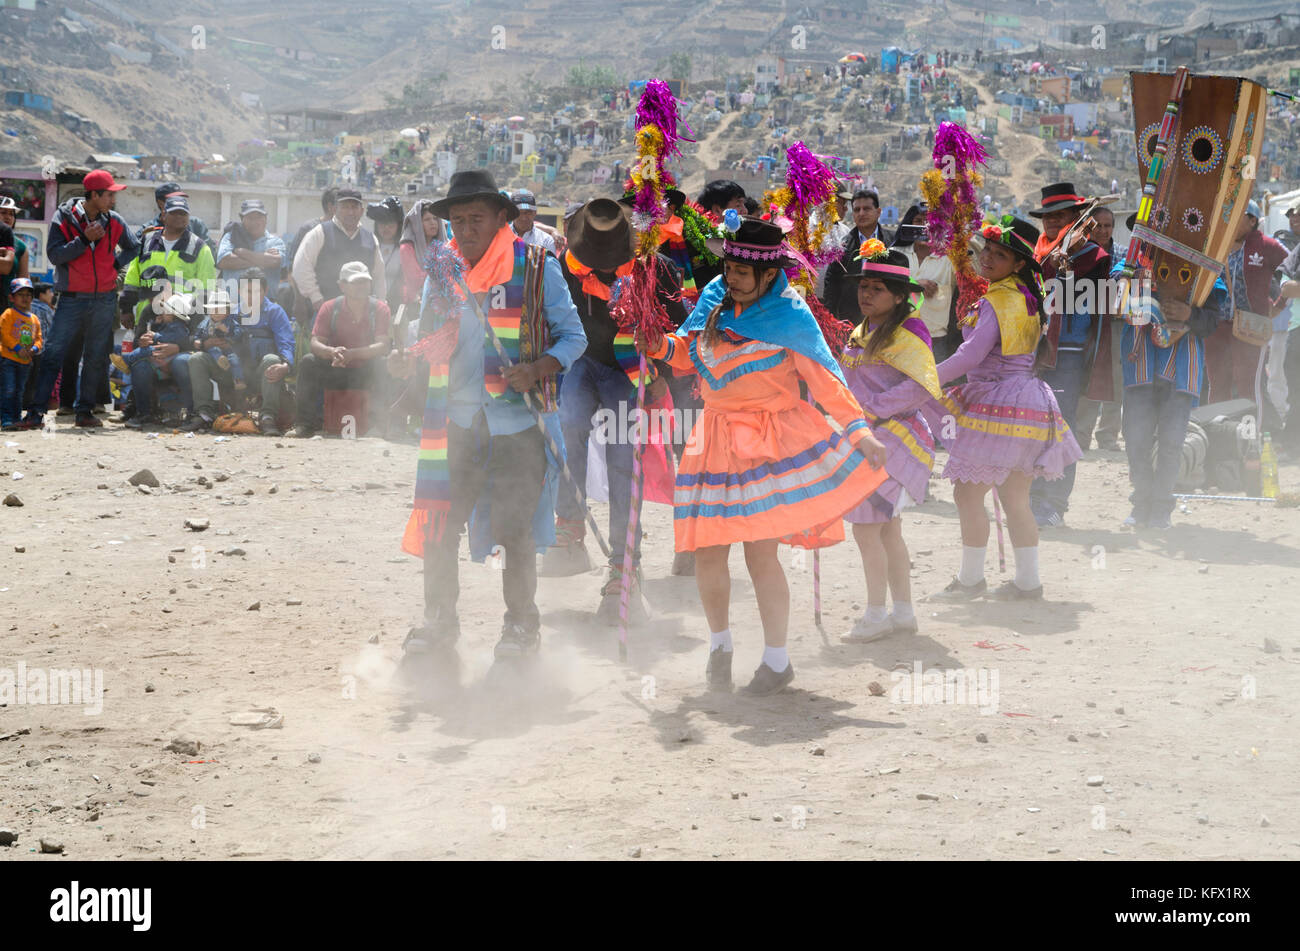 Celebration of All Saints' Day in a Lima Cemetery, Peru / Día de los Muertos en el Cementerio de Villa - Stock Image